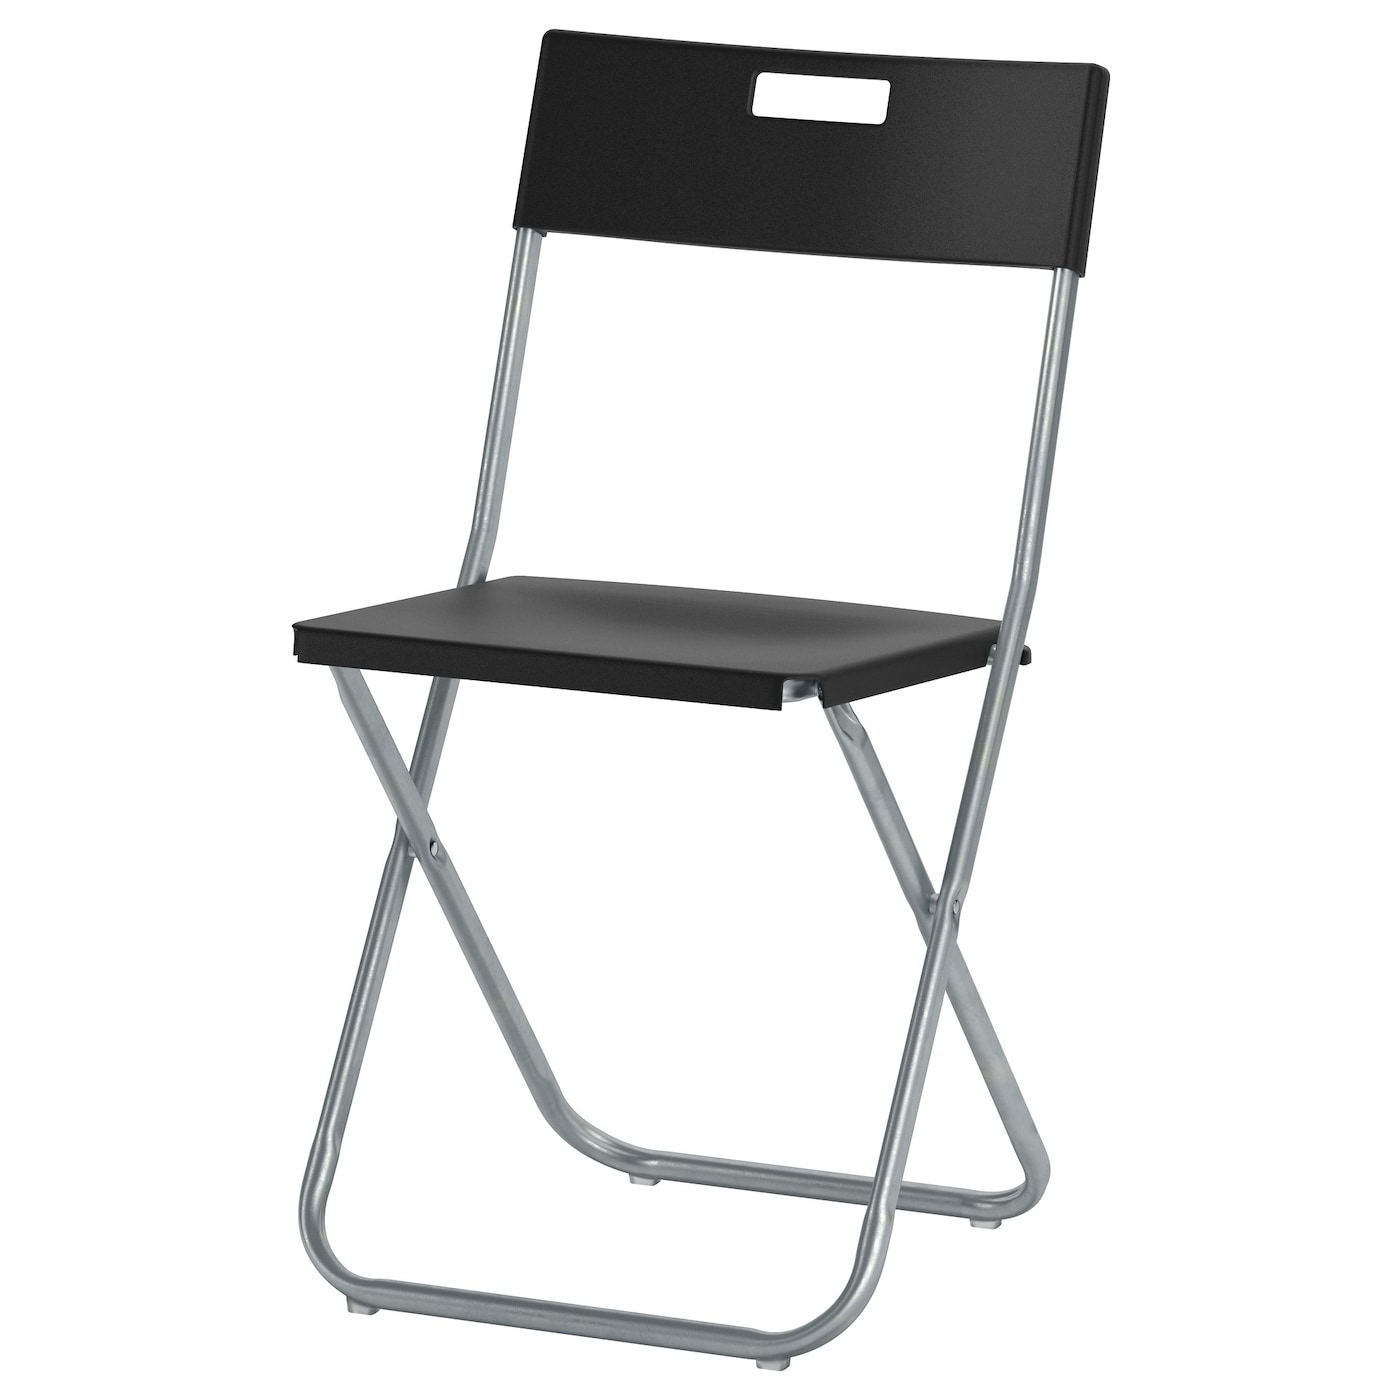 IKEA GUNDE folding chair You can fold the chair, so it takes less space when